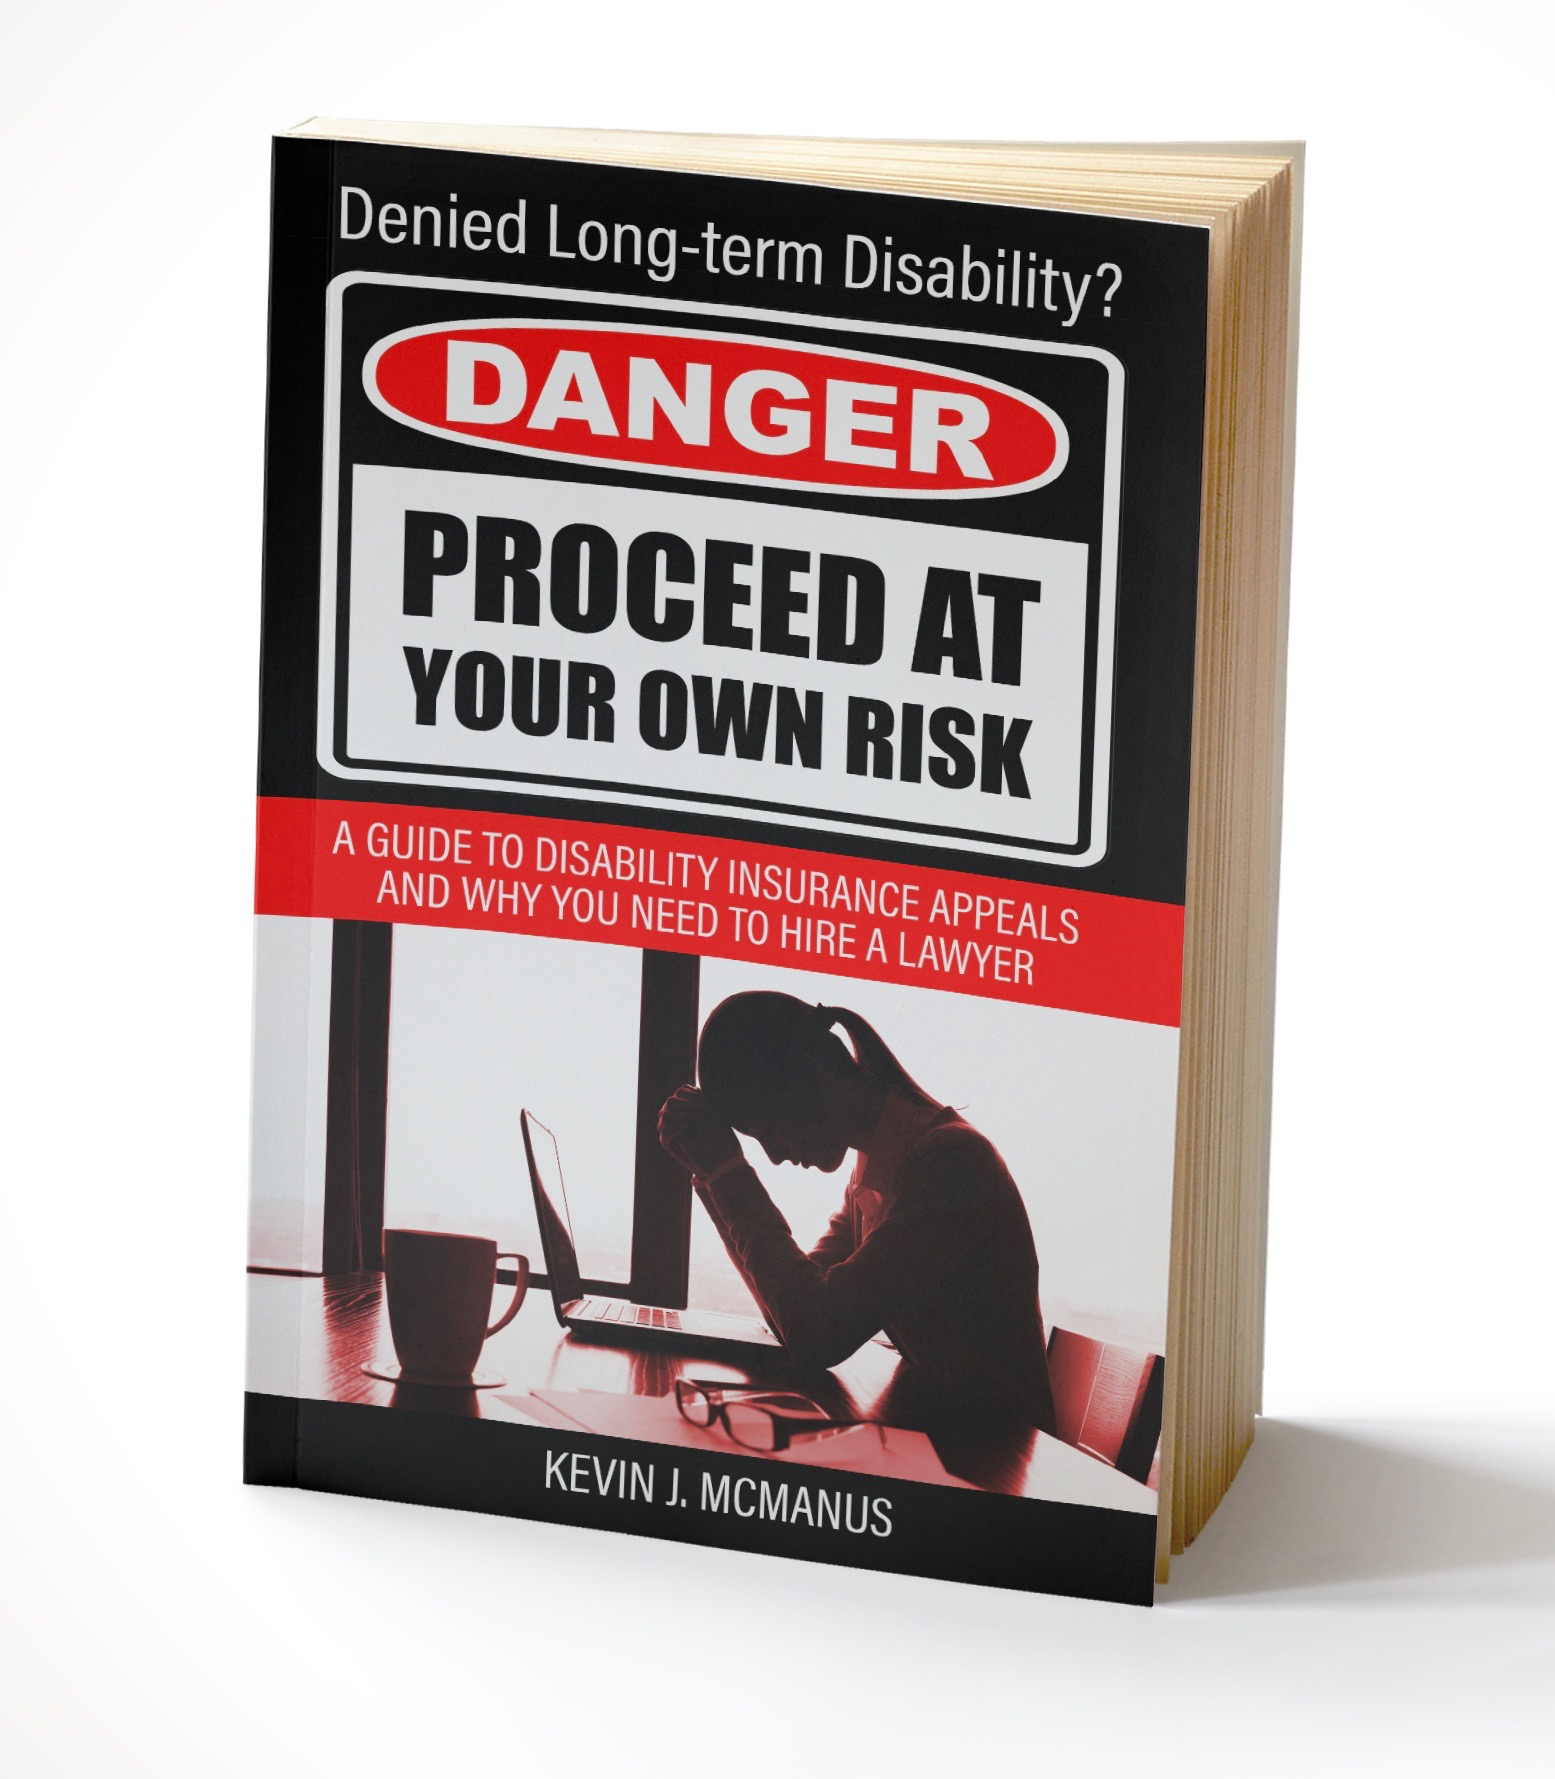 long term disability attorney book for appeals after denial